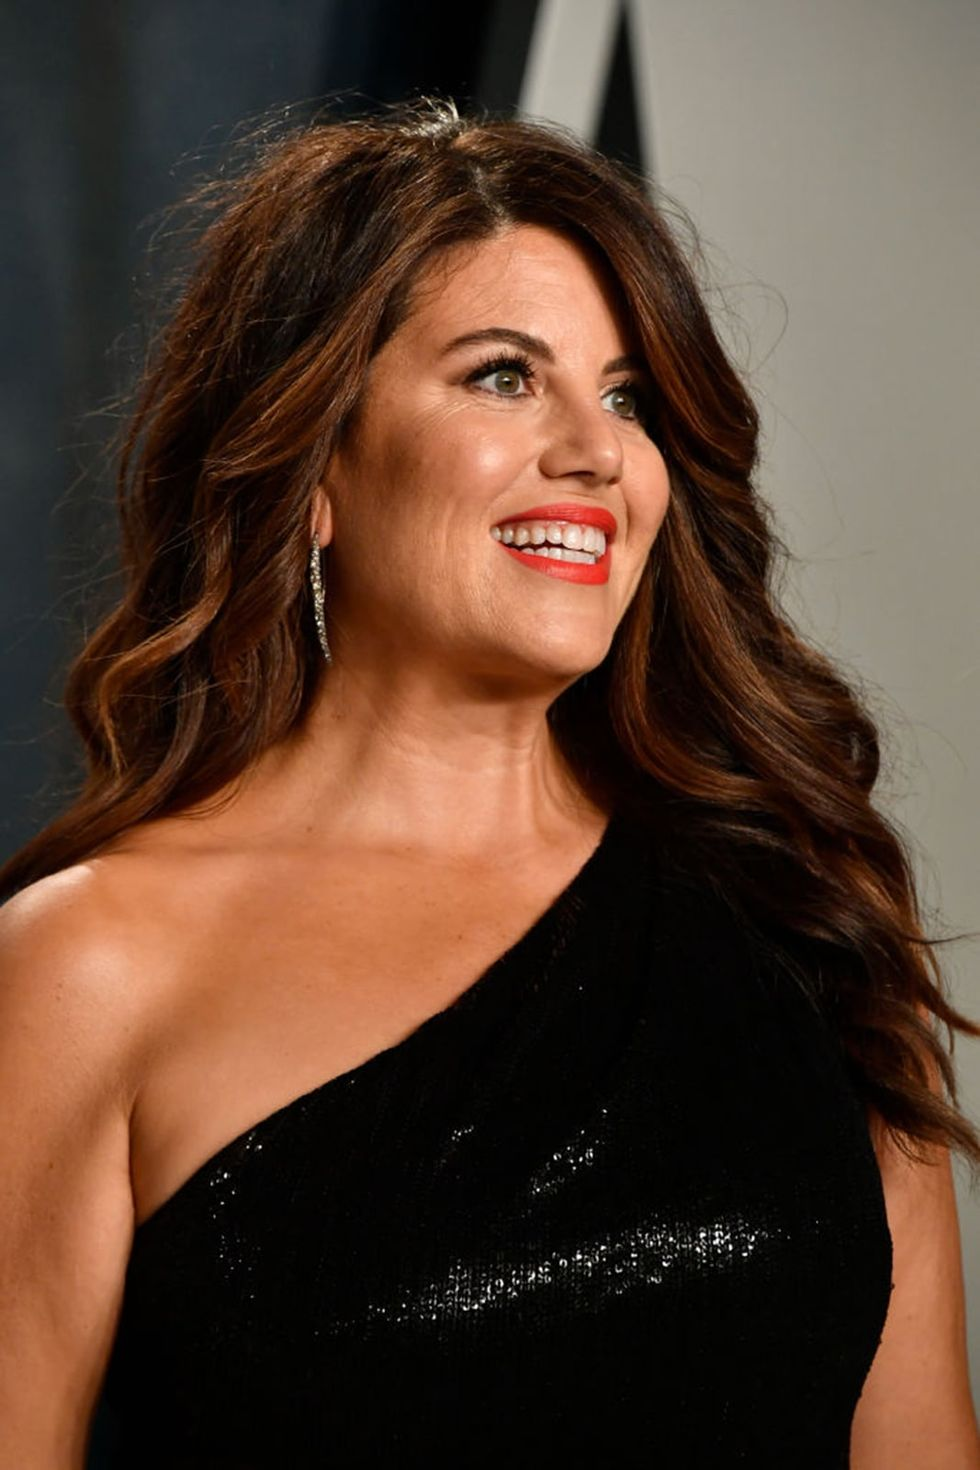 Monica Lewinsky asked for thong-flashing scene to be added in upcoming 'American Crime Story' series